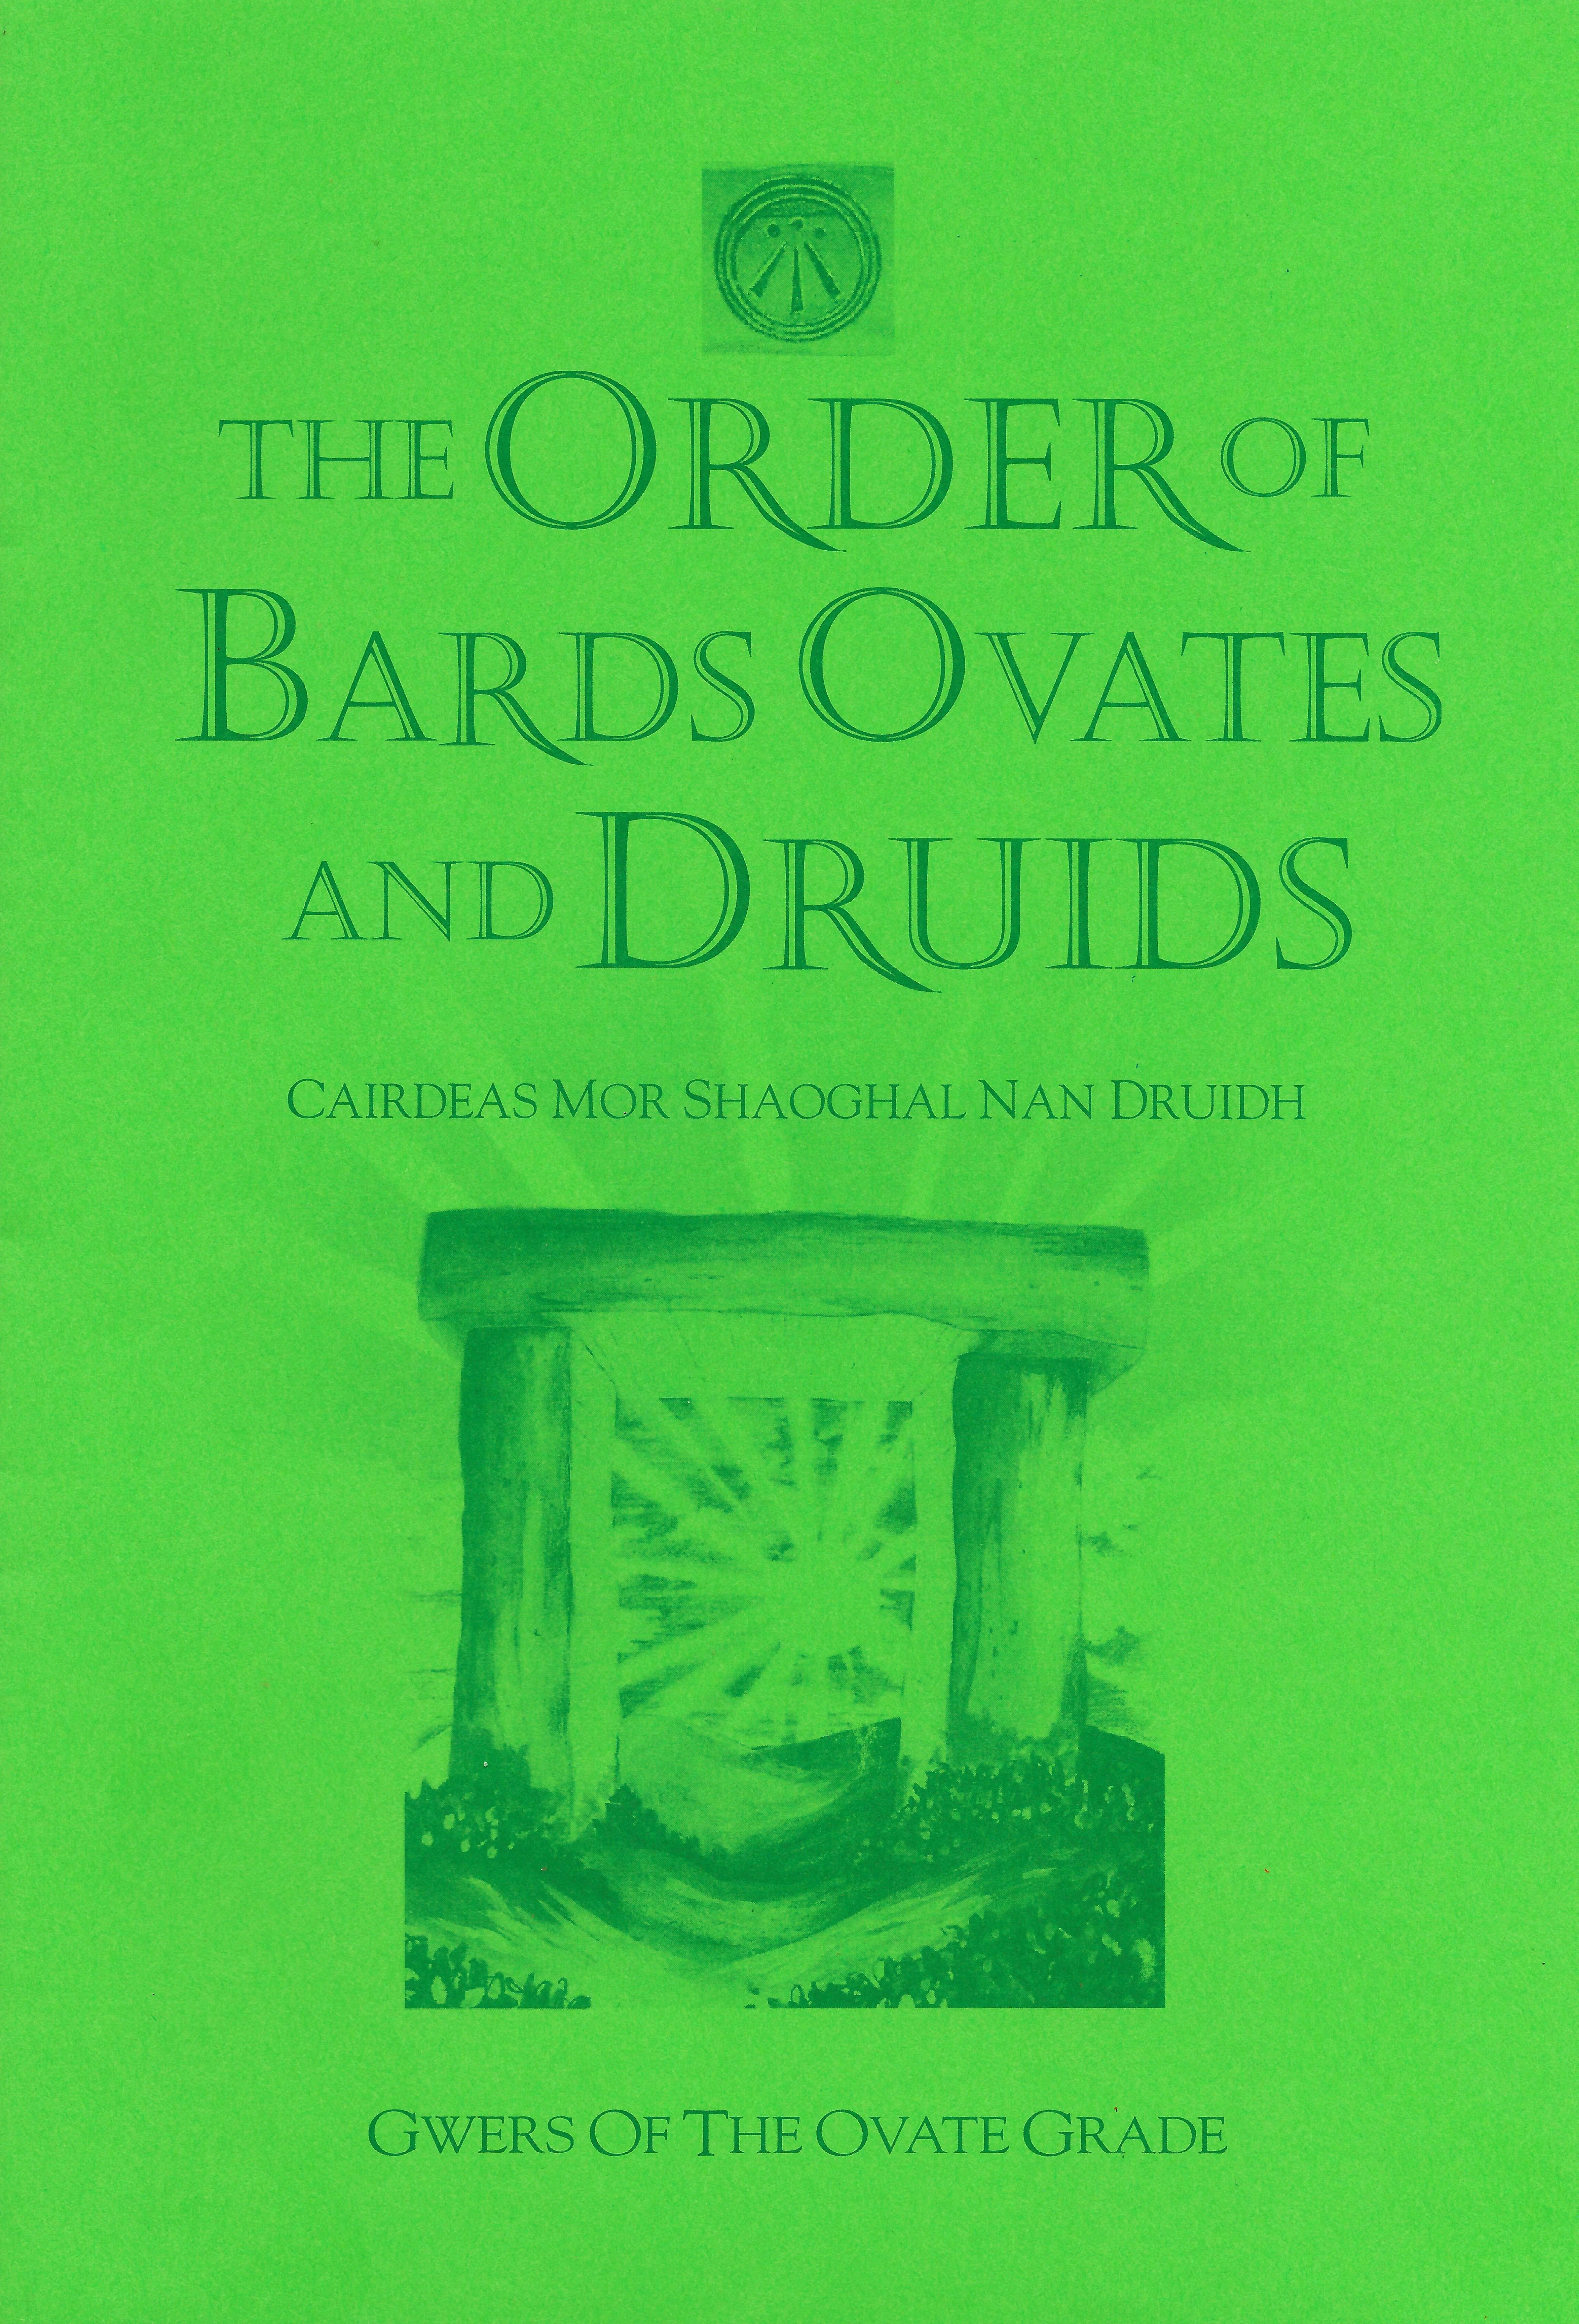 Gwers 19 - Ovate grade  by  The Order of Bards, Ovates and Druids